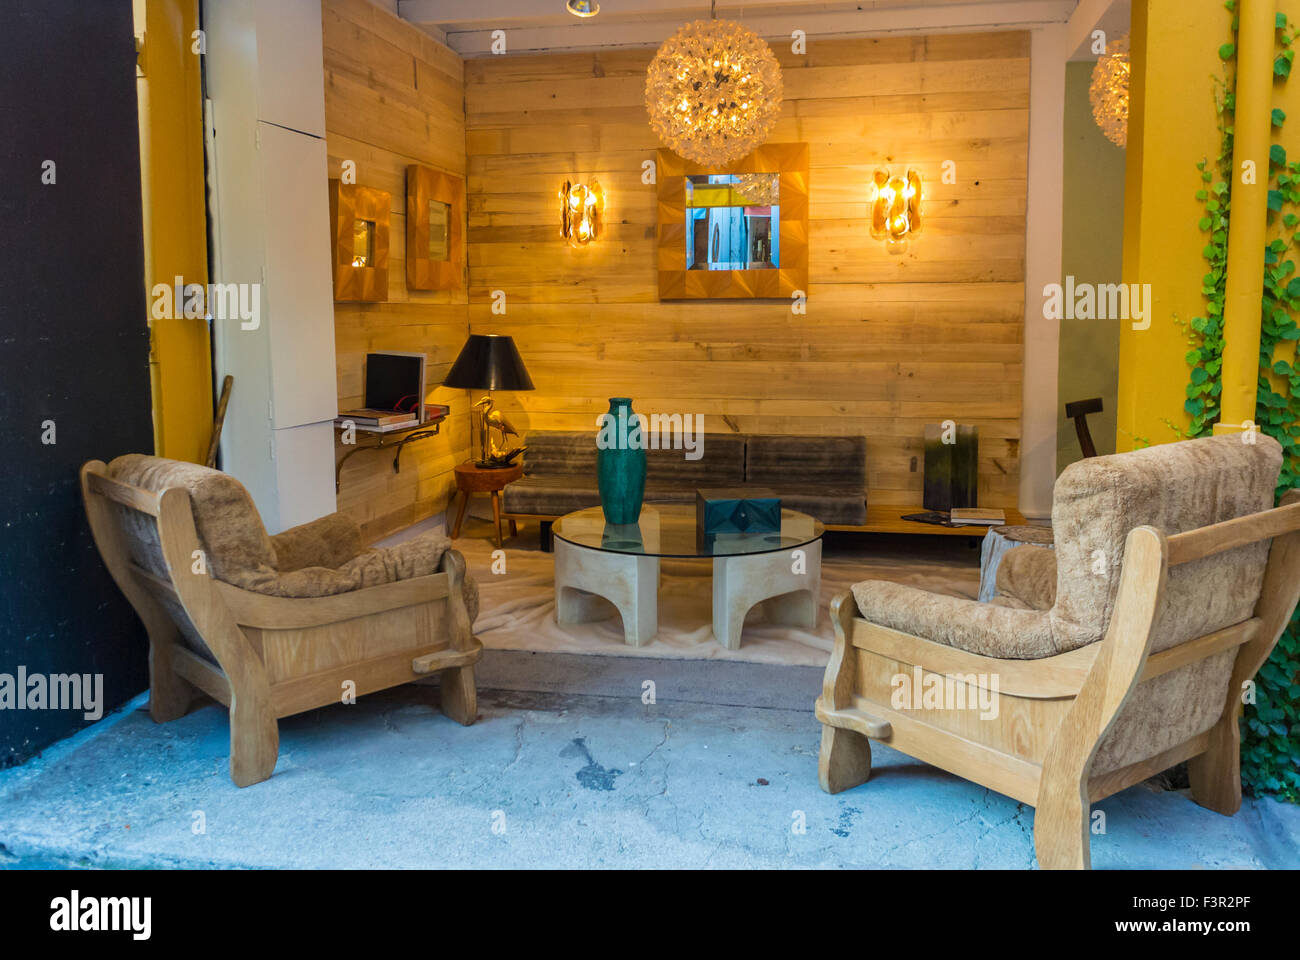 france living room stockfotos france living room bilder alamy. Black Bedroom Furniture Sets. Home Design Ideas